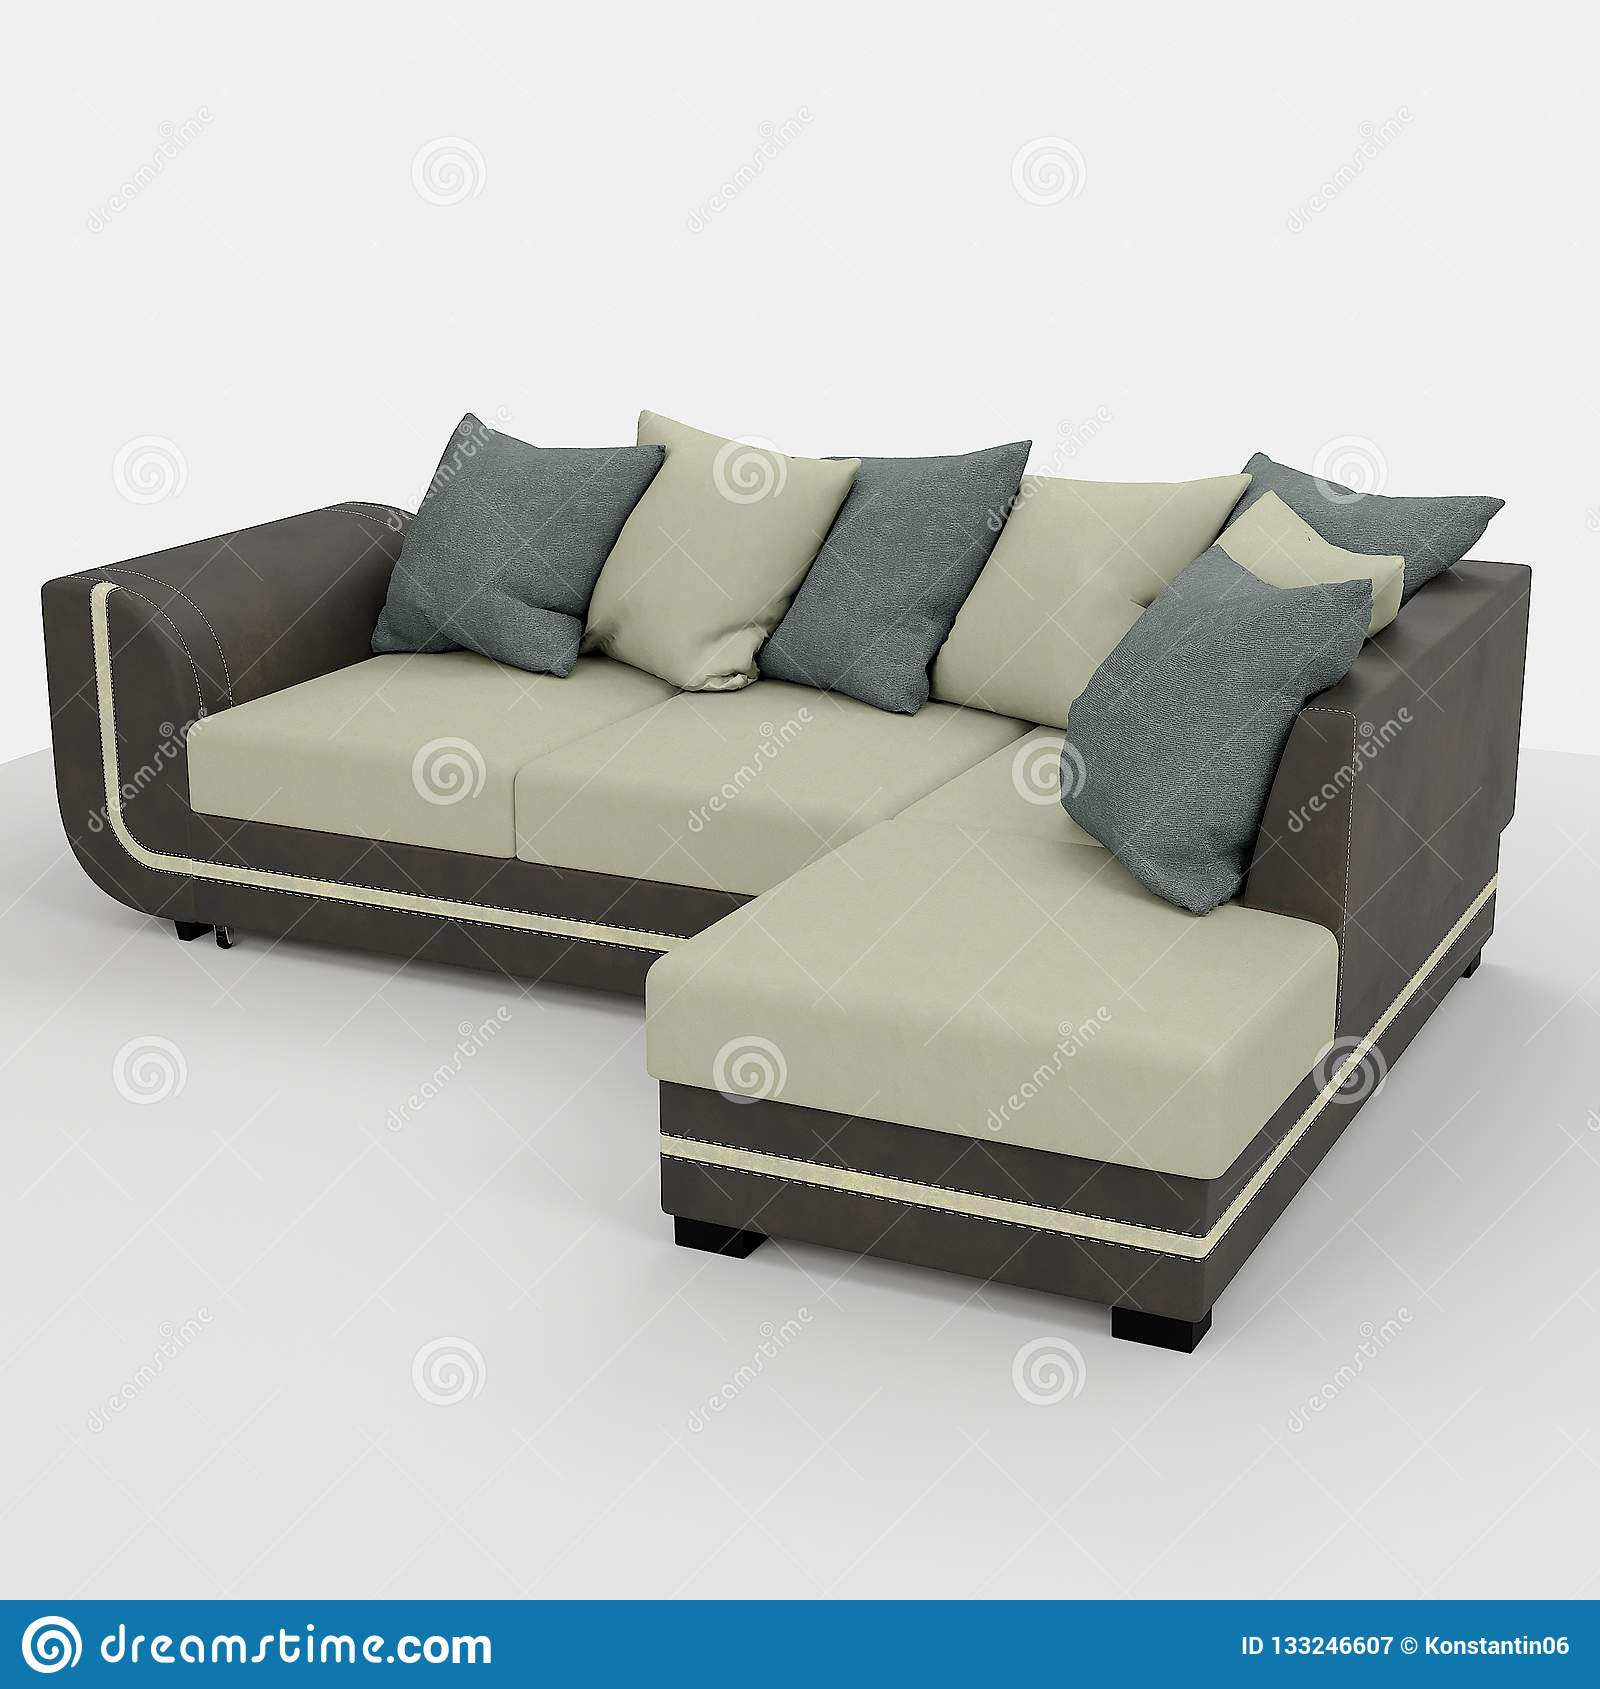 Modern sofa of simple shape a budget option in upholstered furniture use for minimalistic interiors and configuration of inexpensive hotels